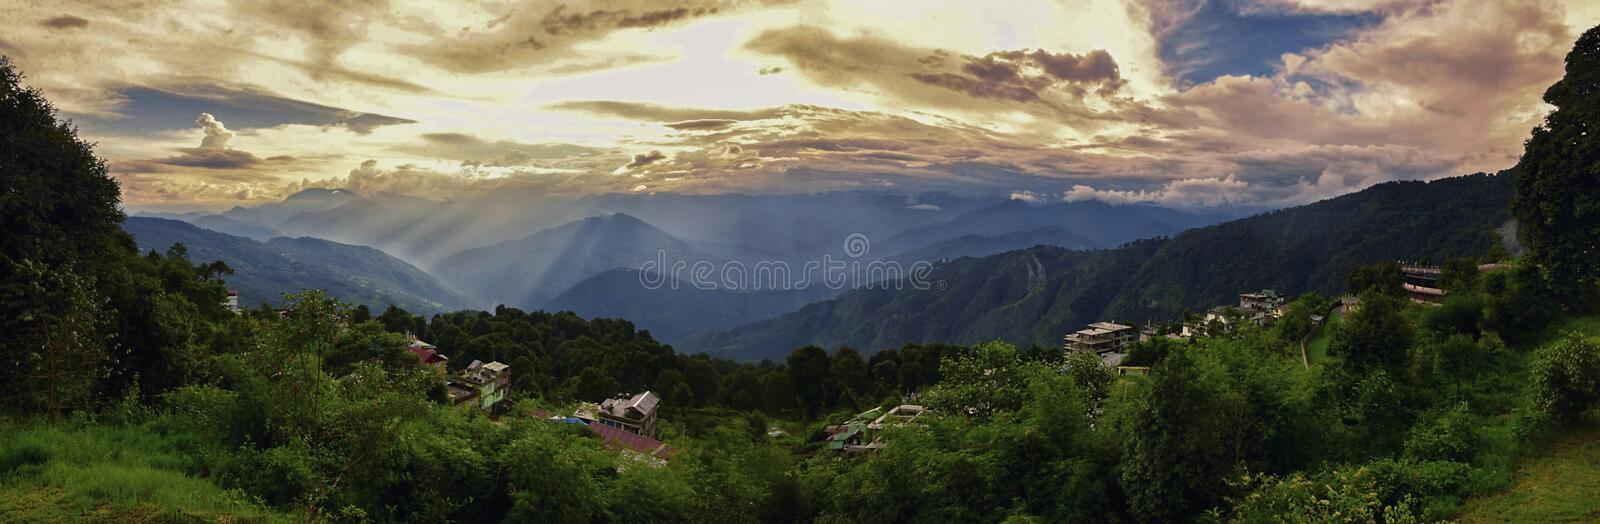 Shillong peak royalty free stock images